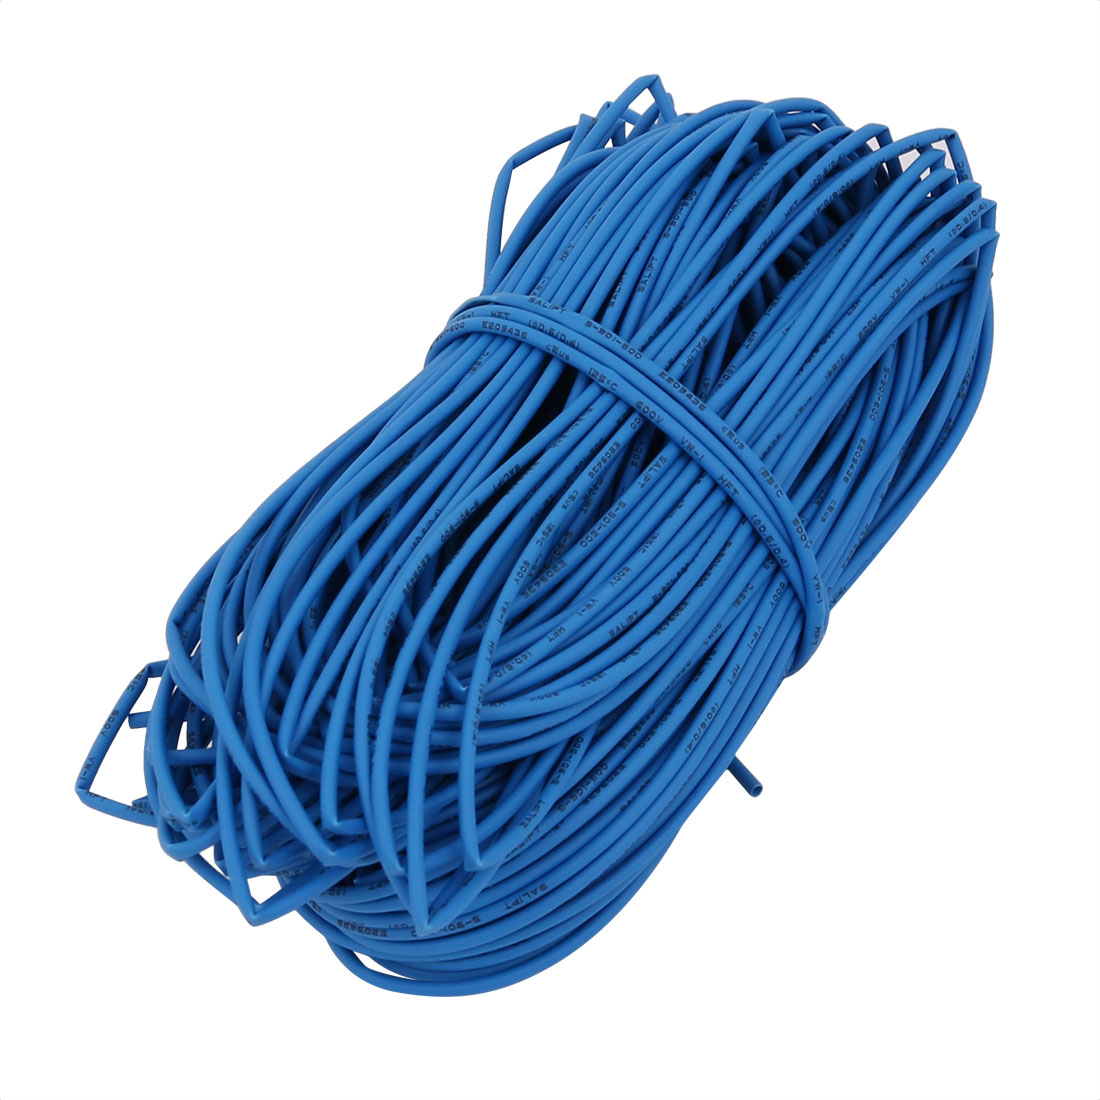 Heat Shrinkable Tube 0.6mm Inner Dia Blue Wire Wrap Cable Sleeve 20 Meters Long